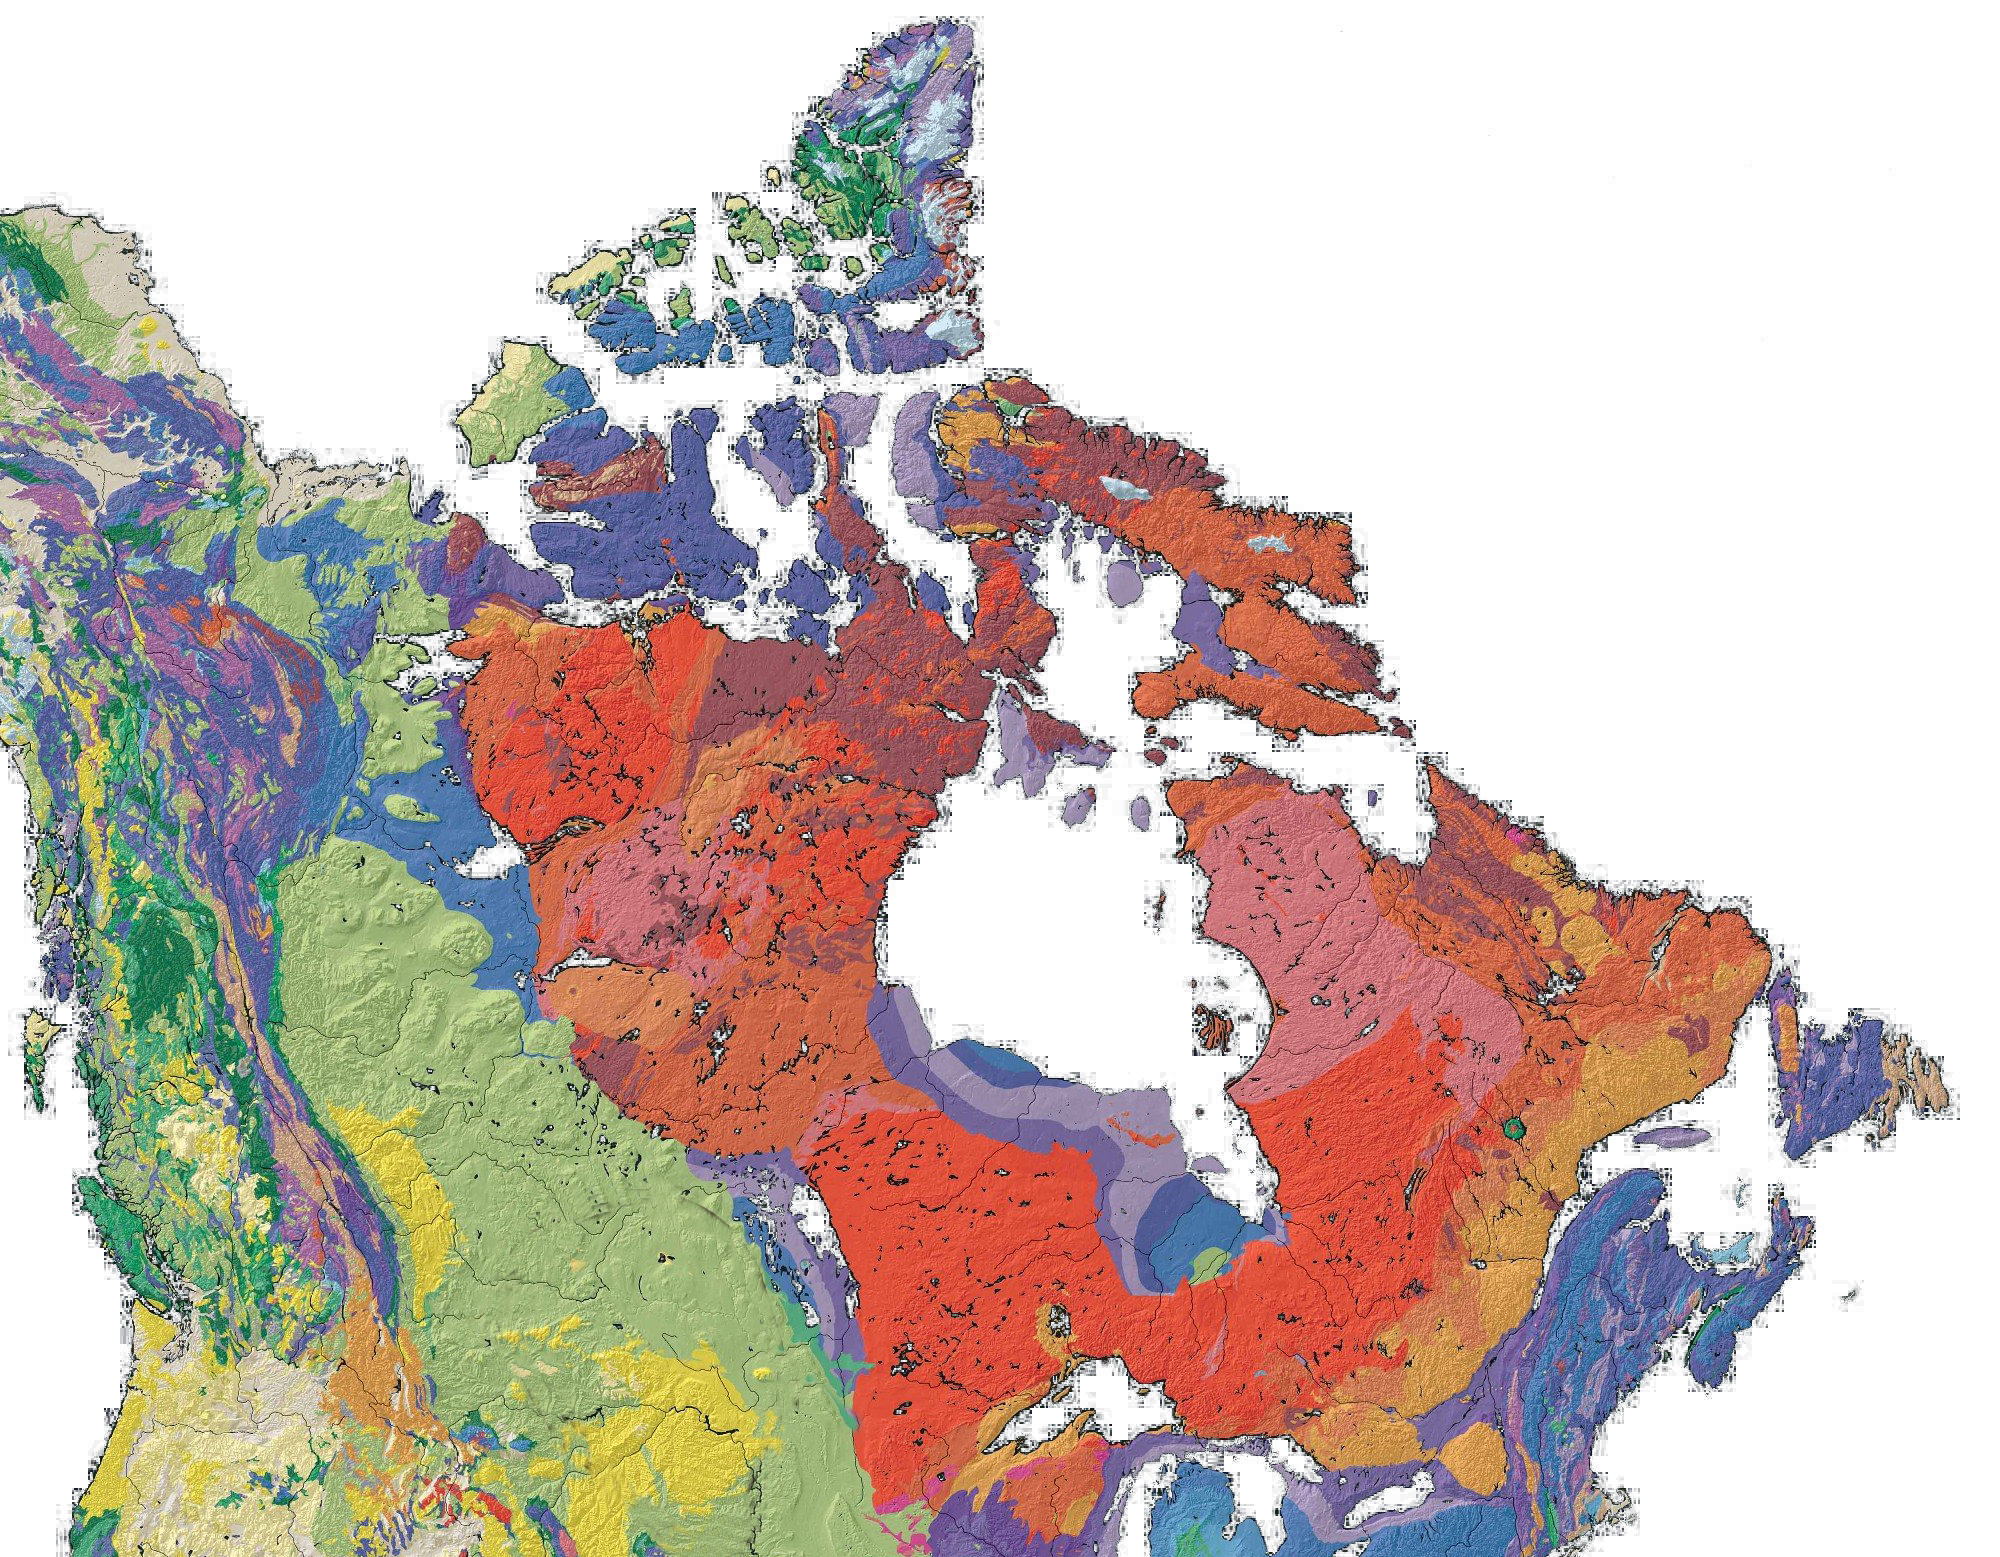 http://upload.wikimedia.org/wikipedia/commons/5/51/Canada_geological_map.JPG